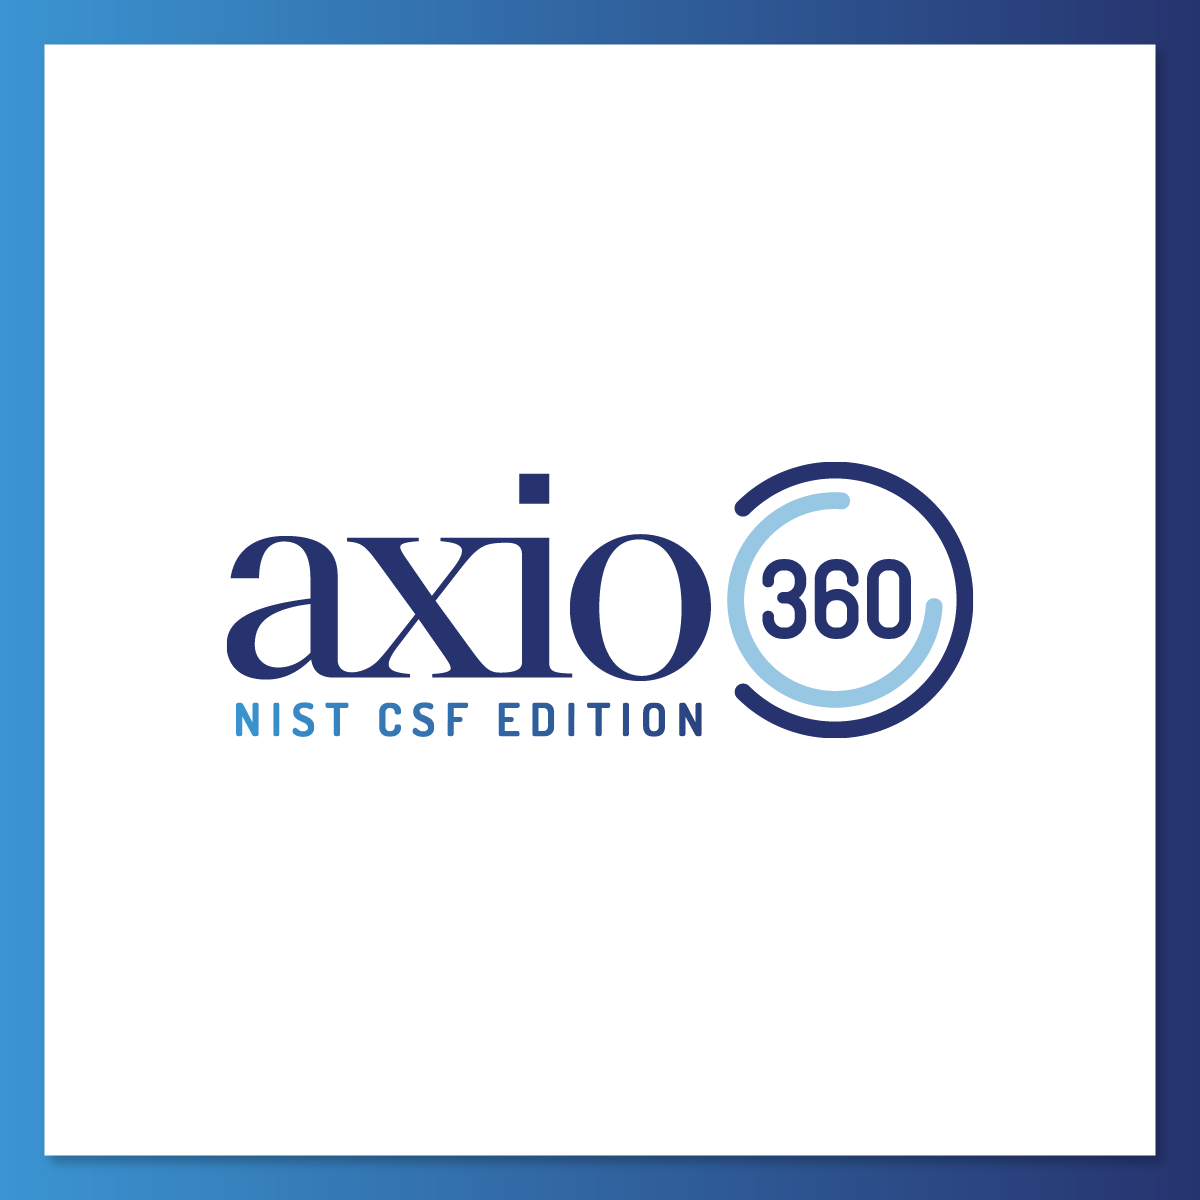 Axio Launches Cyber Risk Management Platform to Enable Dynamic Utilization of NIST Cybersecurity Framework (NIST-CSF)